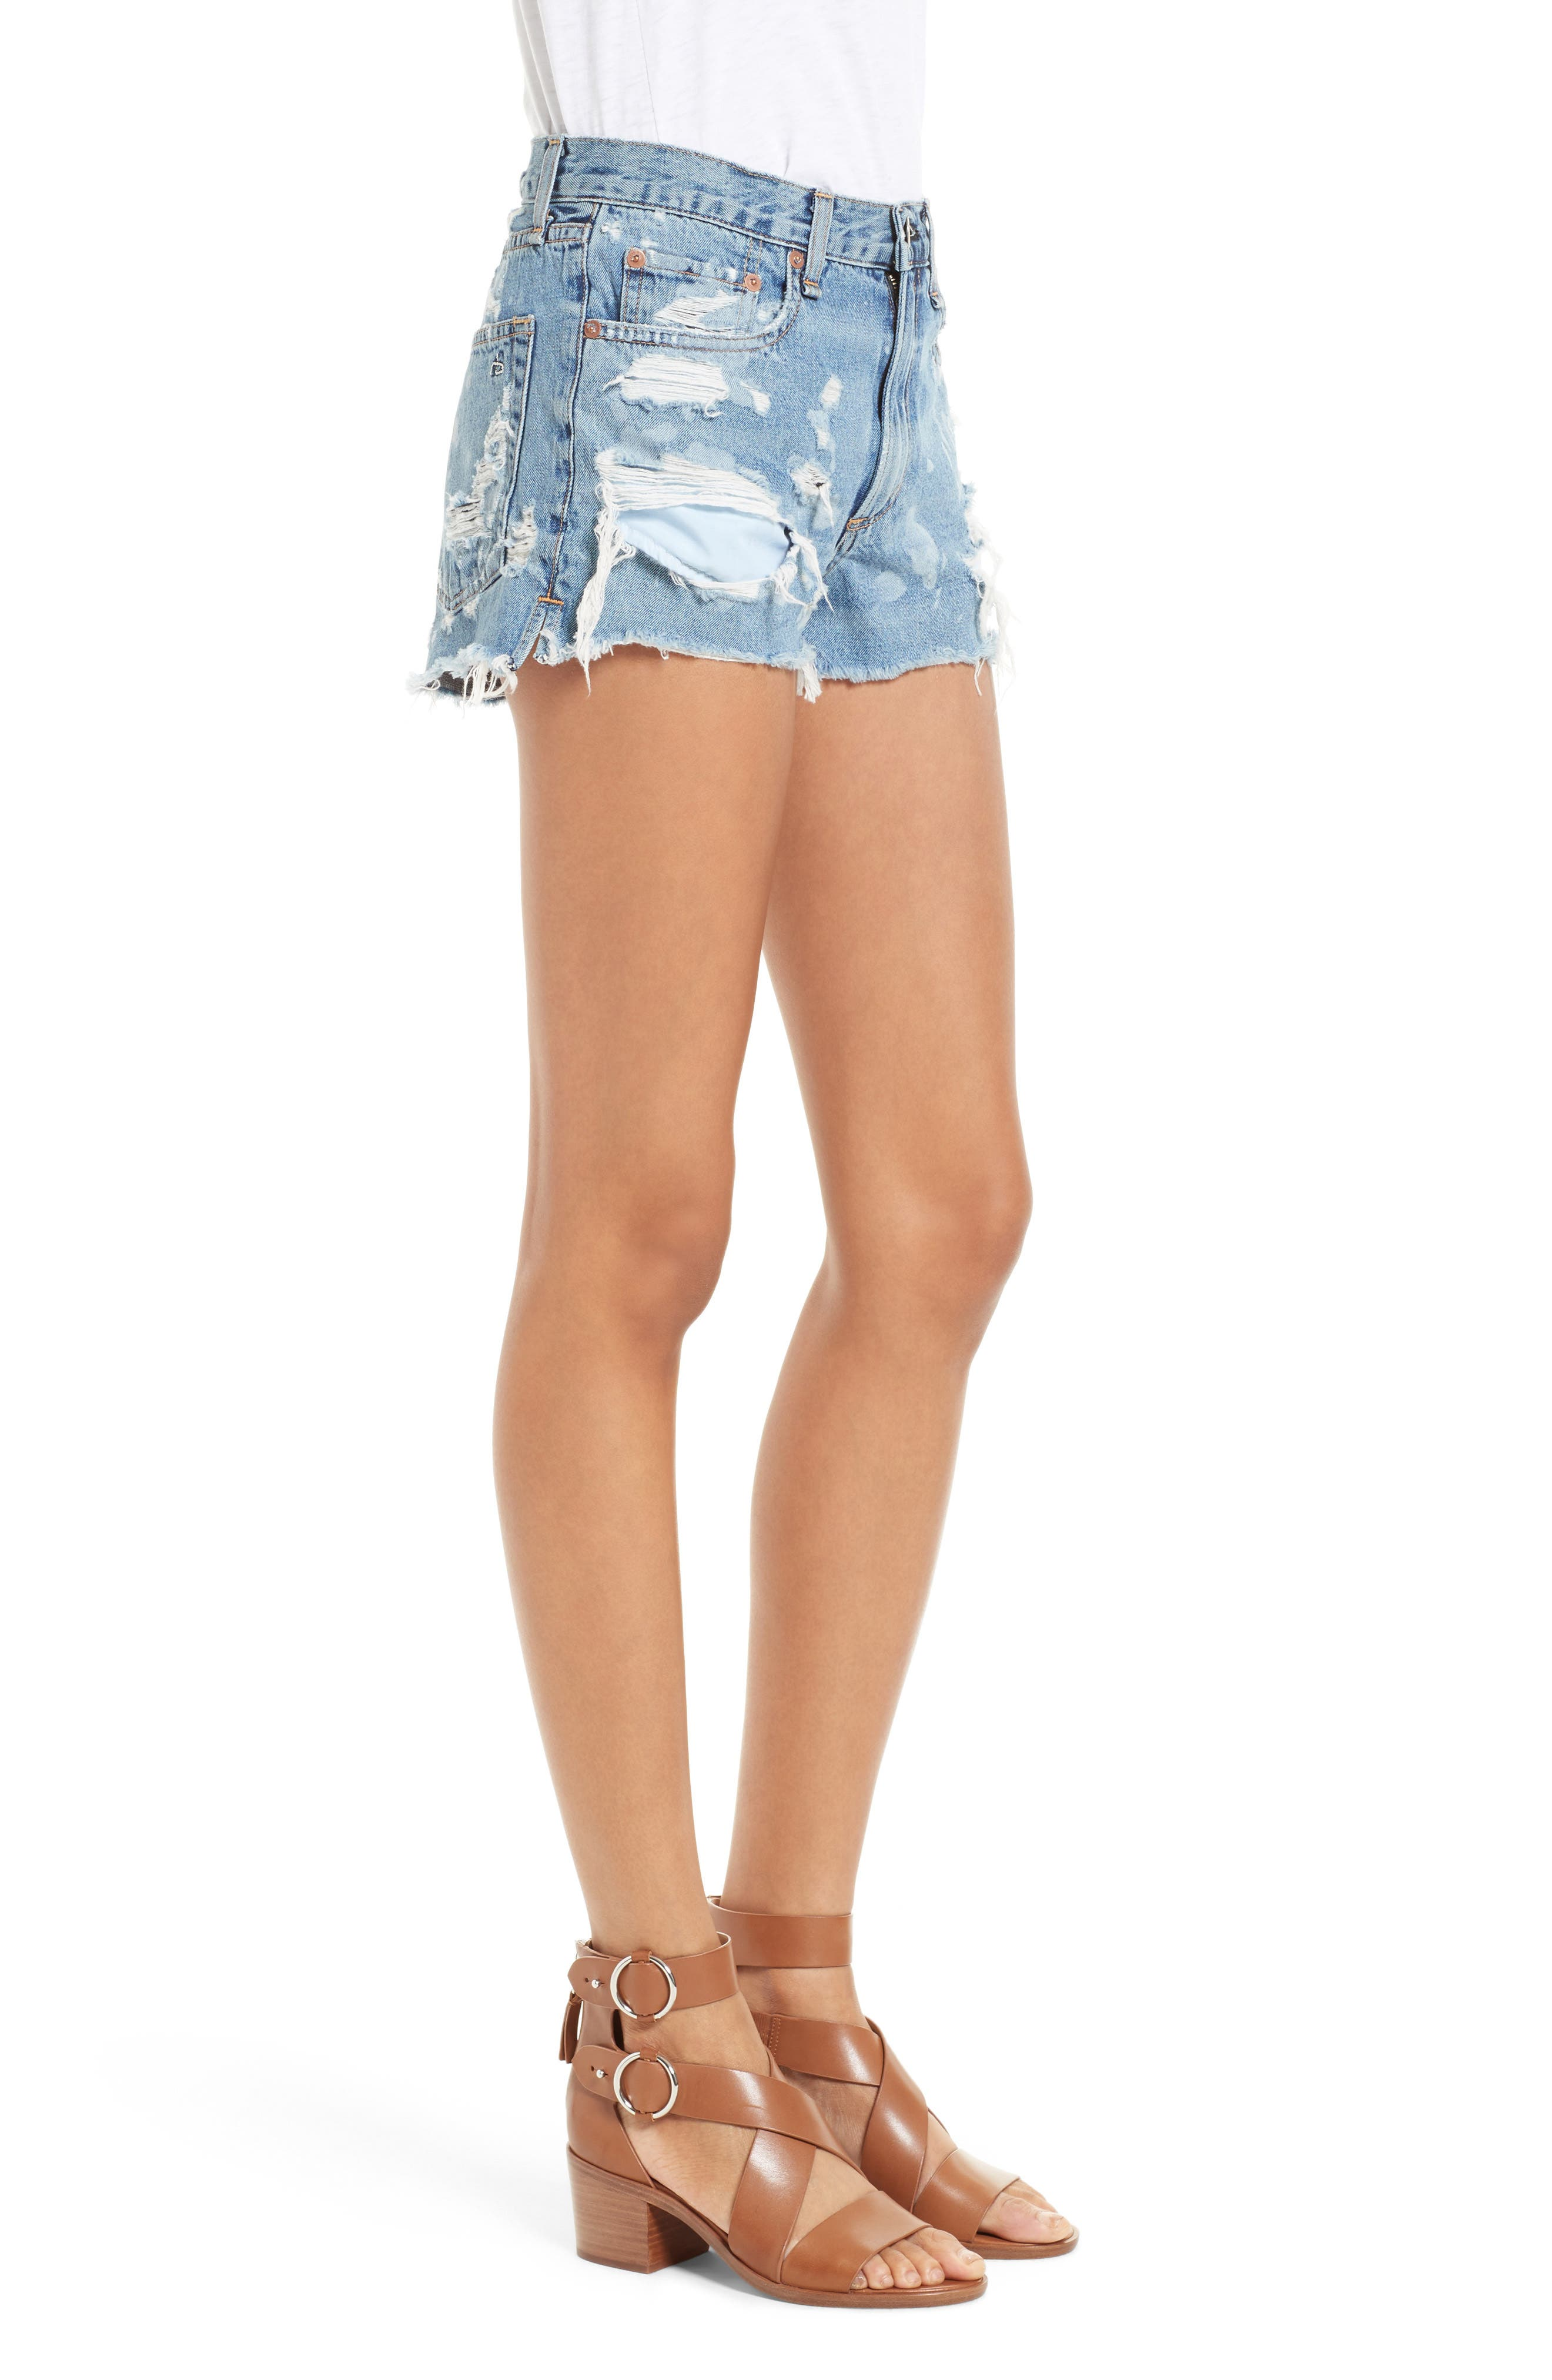 Justine High Waist Cutoff Denim Shorts,                             Alternate thumbnail 3, color,                             422